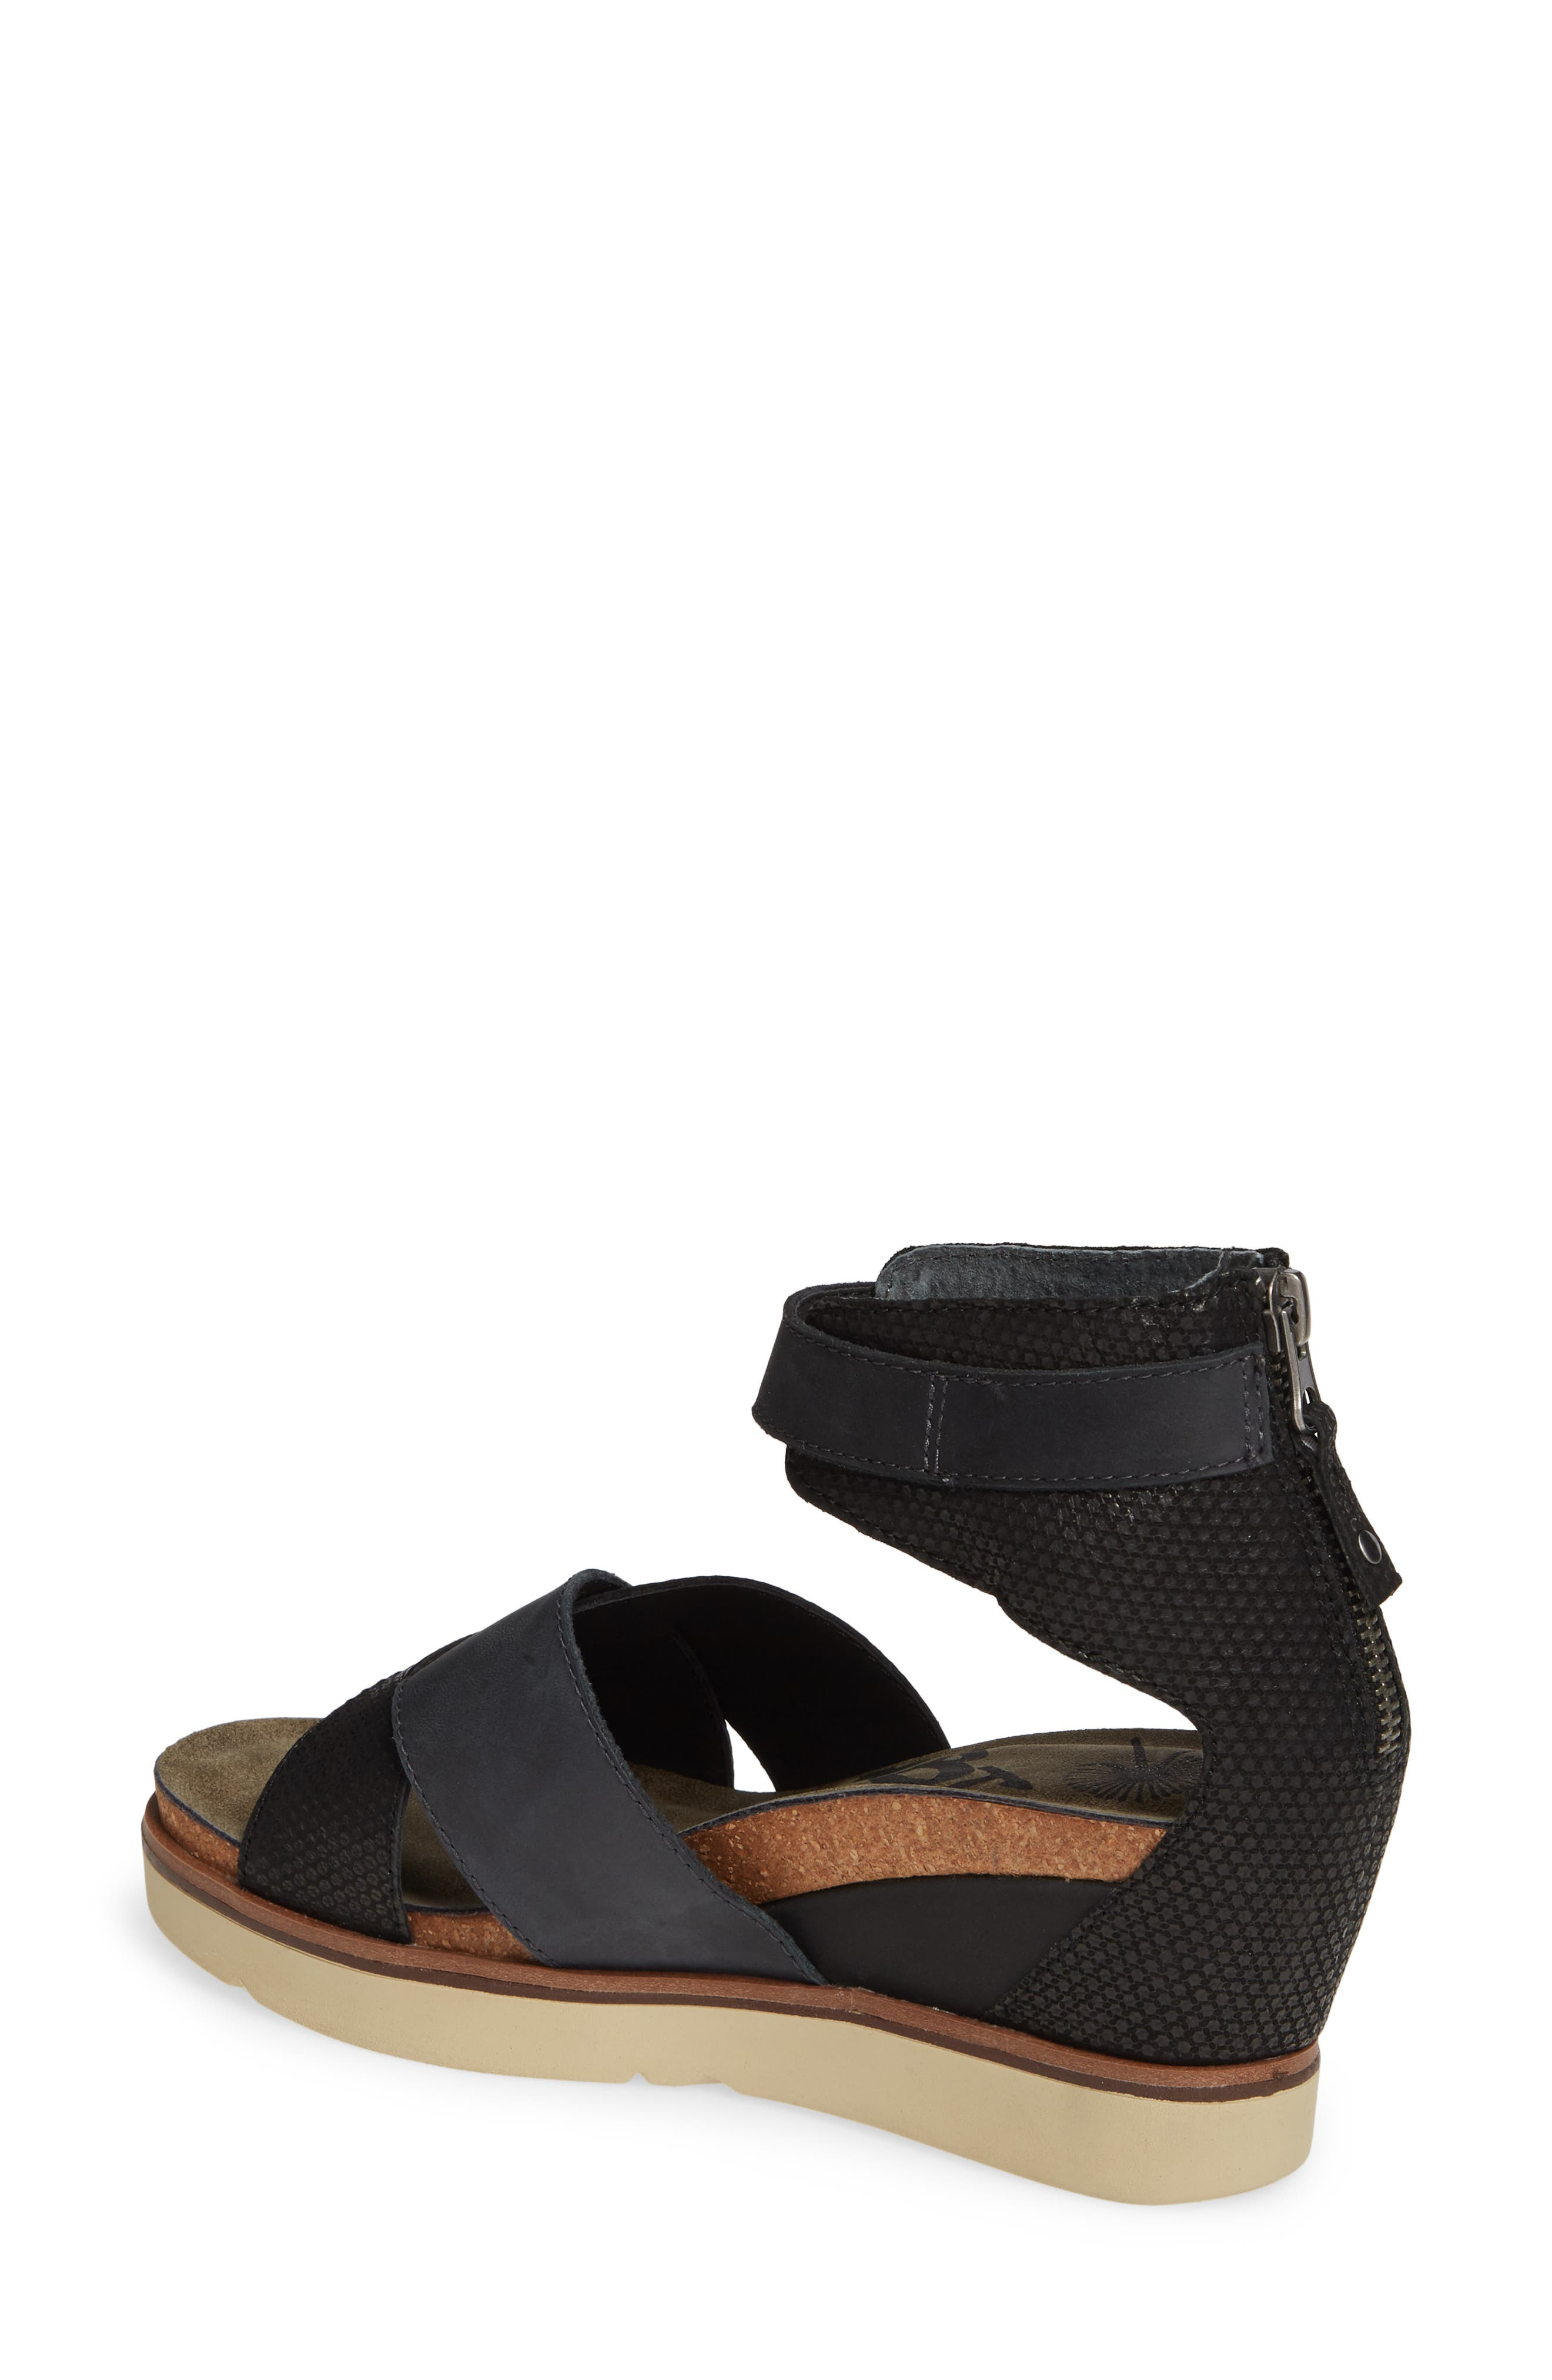 OTBT, Teamwork Ankle Strap Sandal, Alternate thumbnail 2, color, BLACK LEATHER